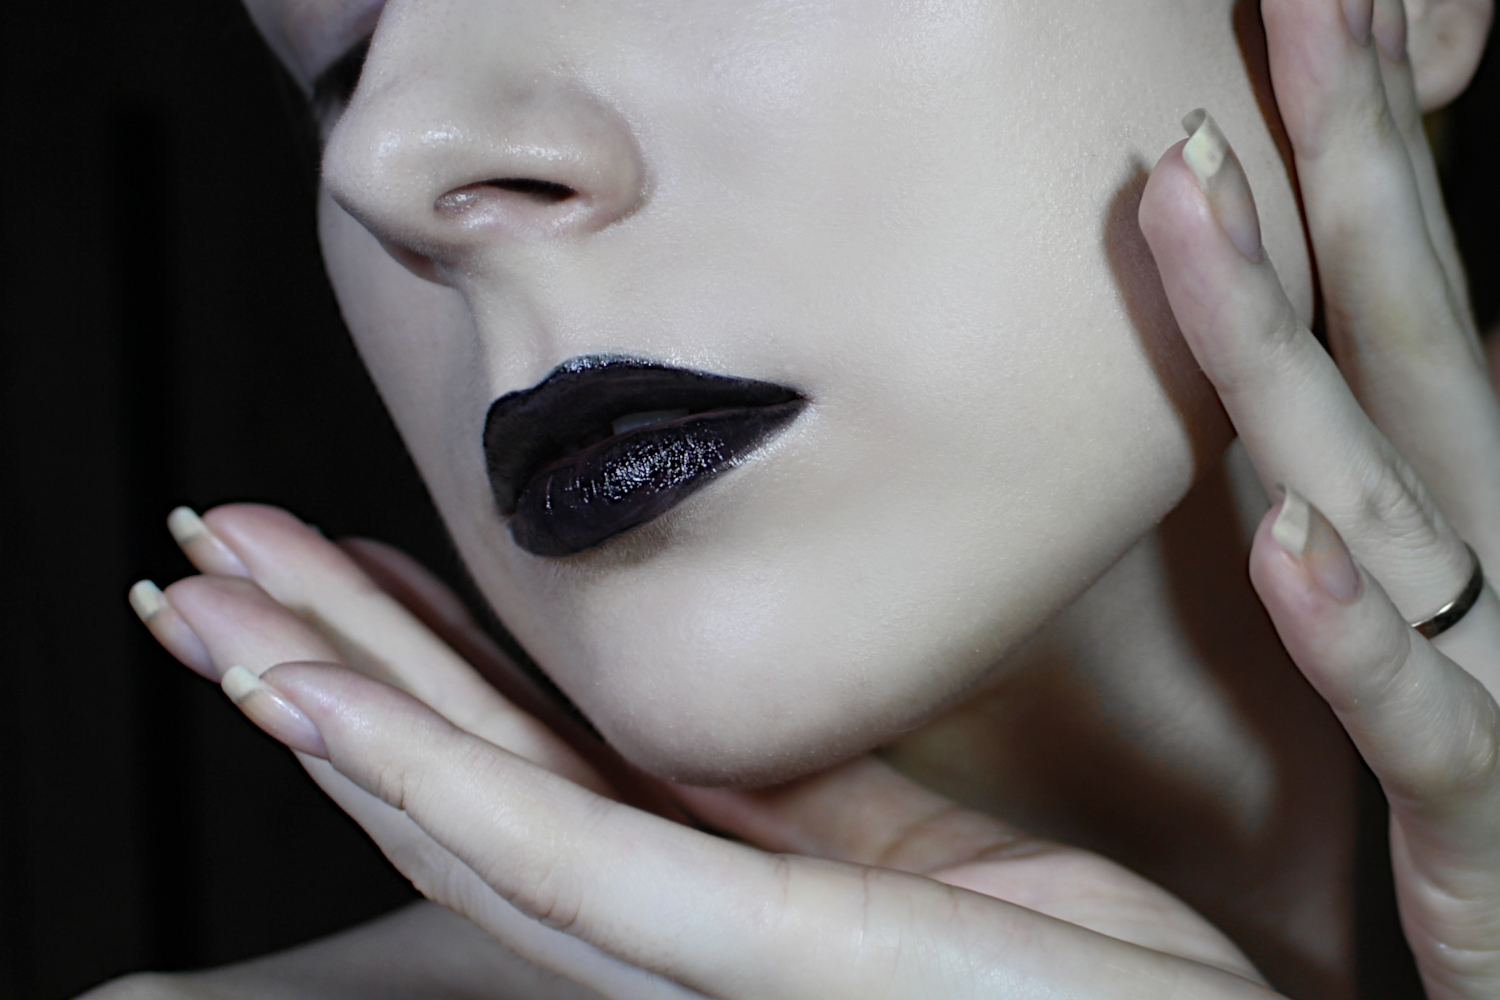 girl is wearing black lipstick